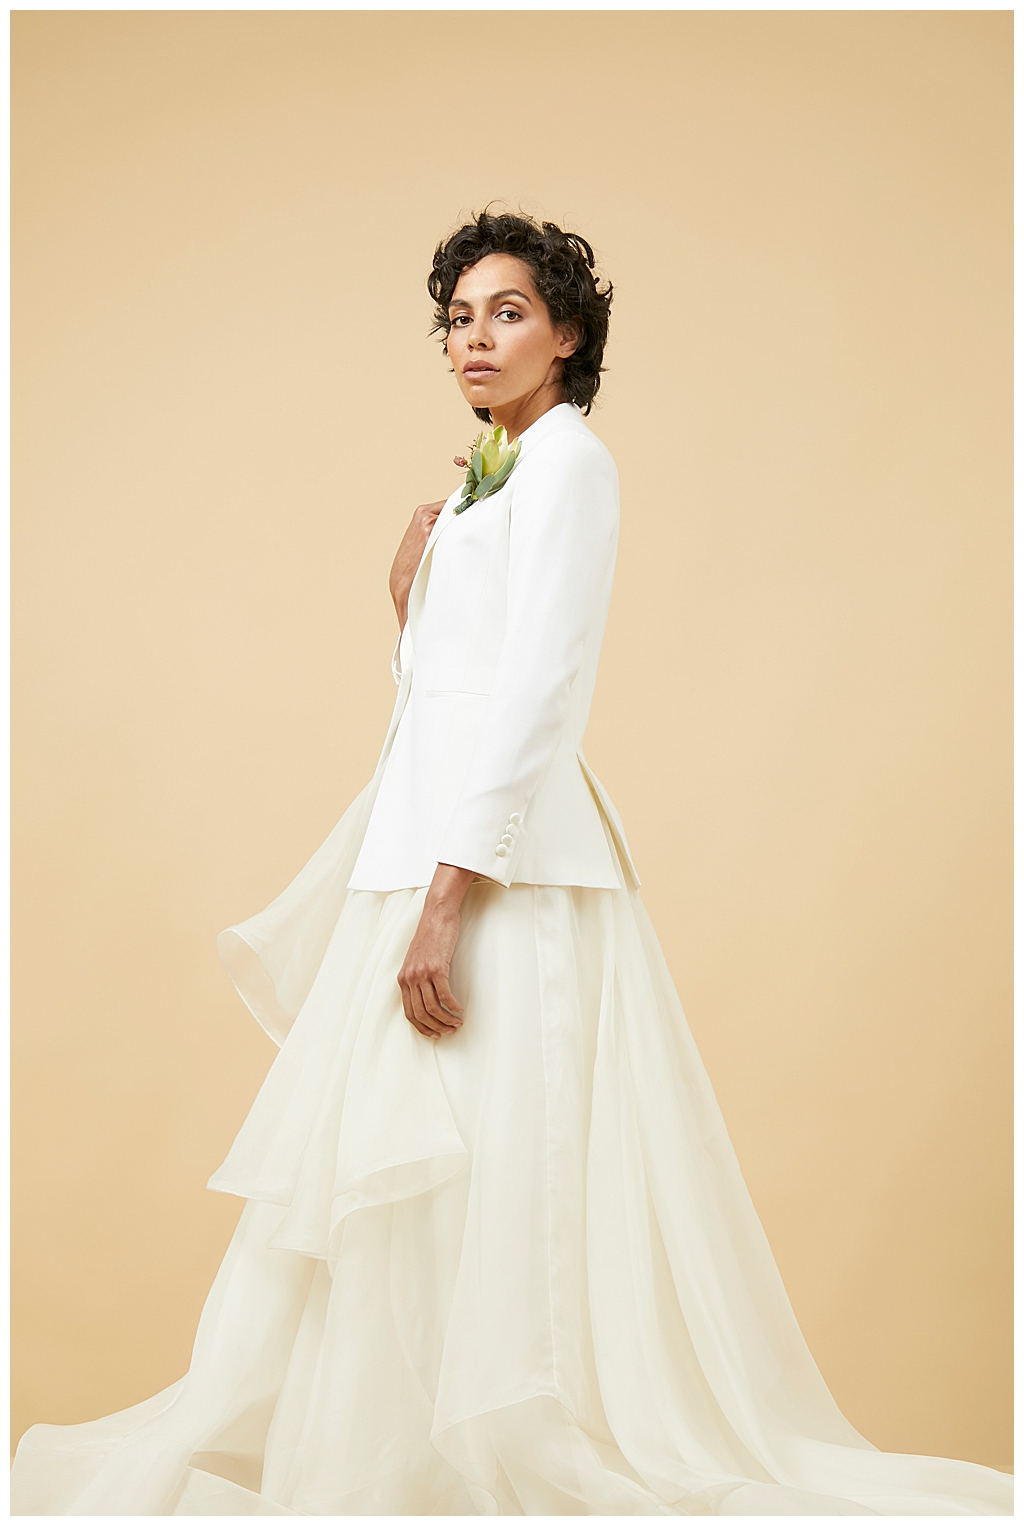 lgbtq-wedding-fashion-editorial-3